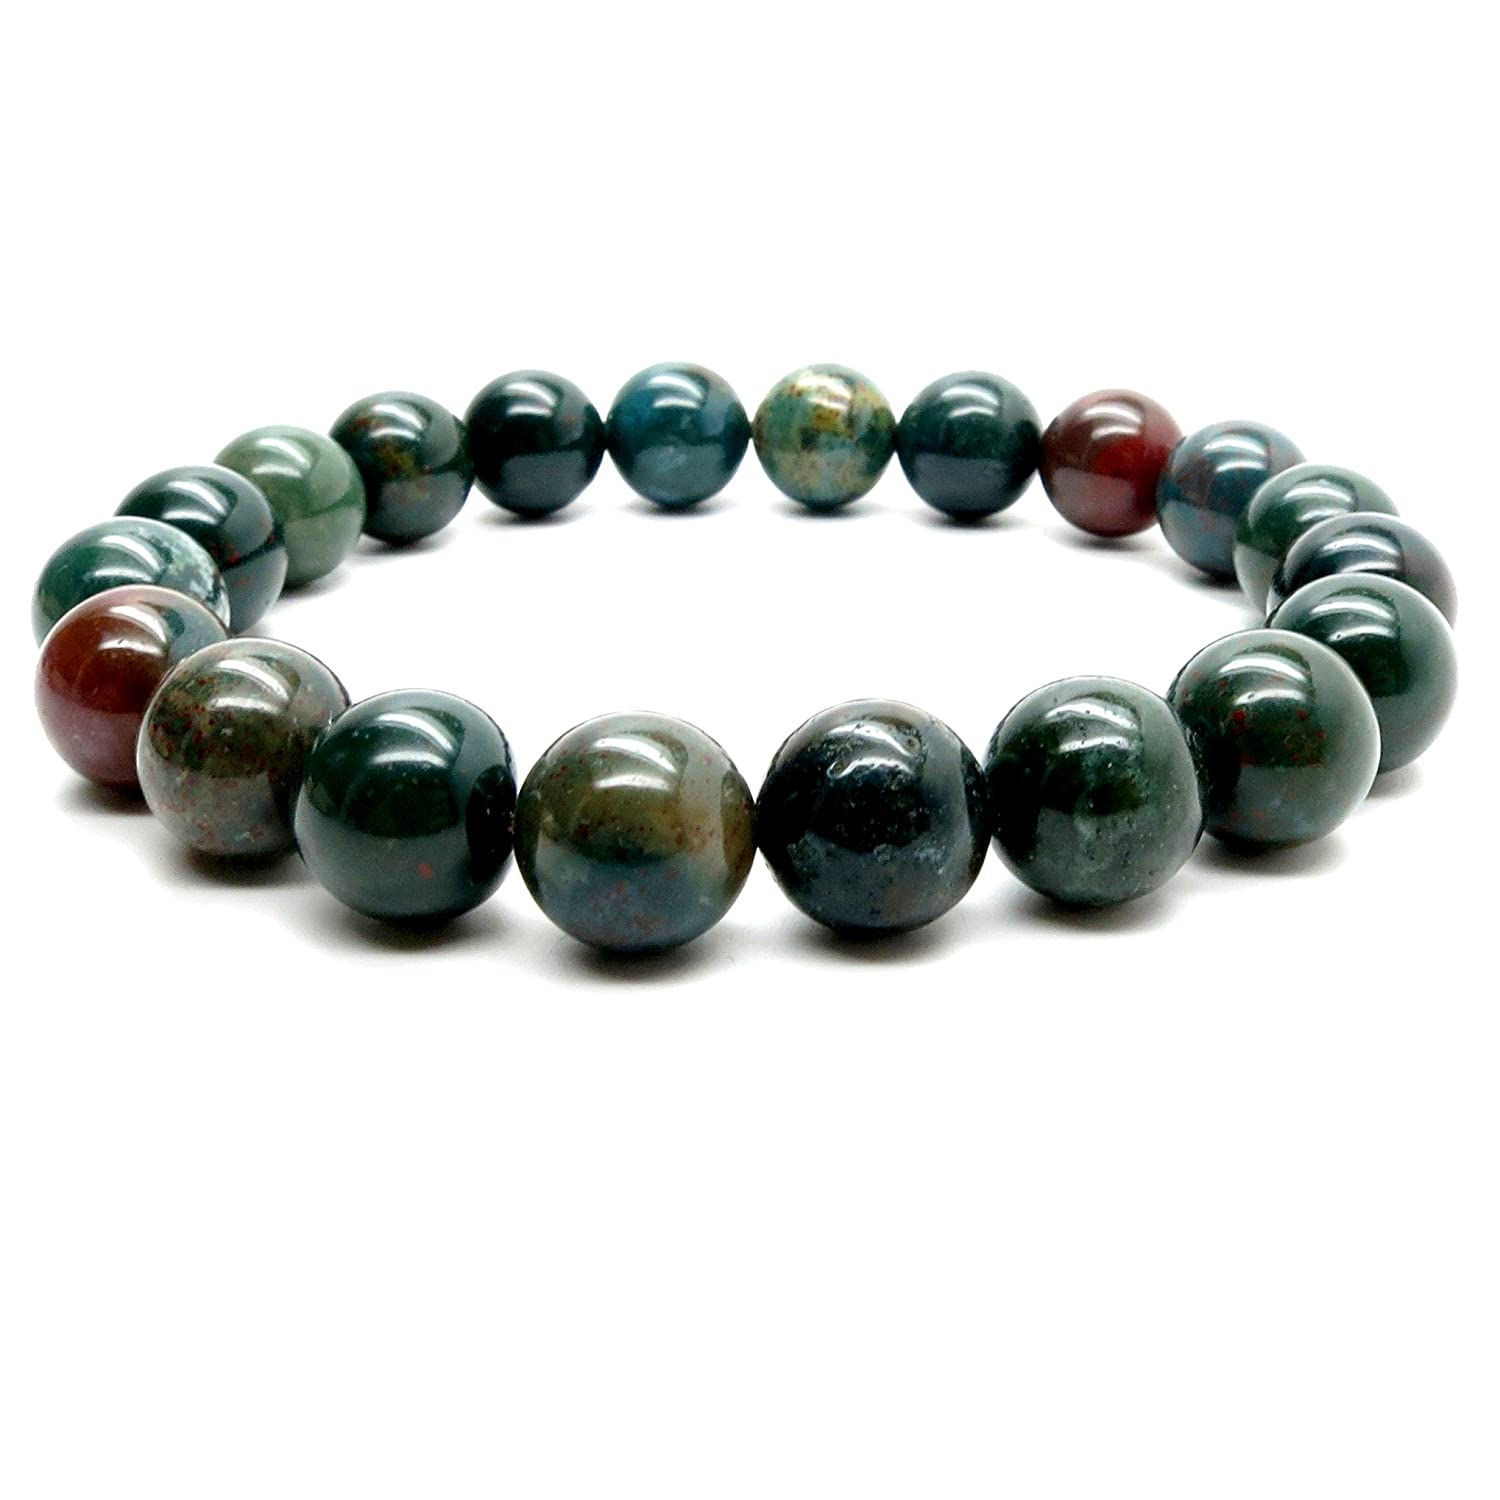 Bloodstone Bracelet Boutique Stretch Genuine Green Red Round Gemstone Crystal Healing Energy B02